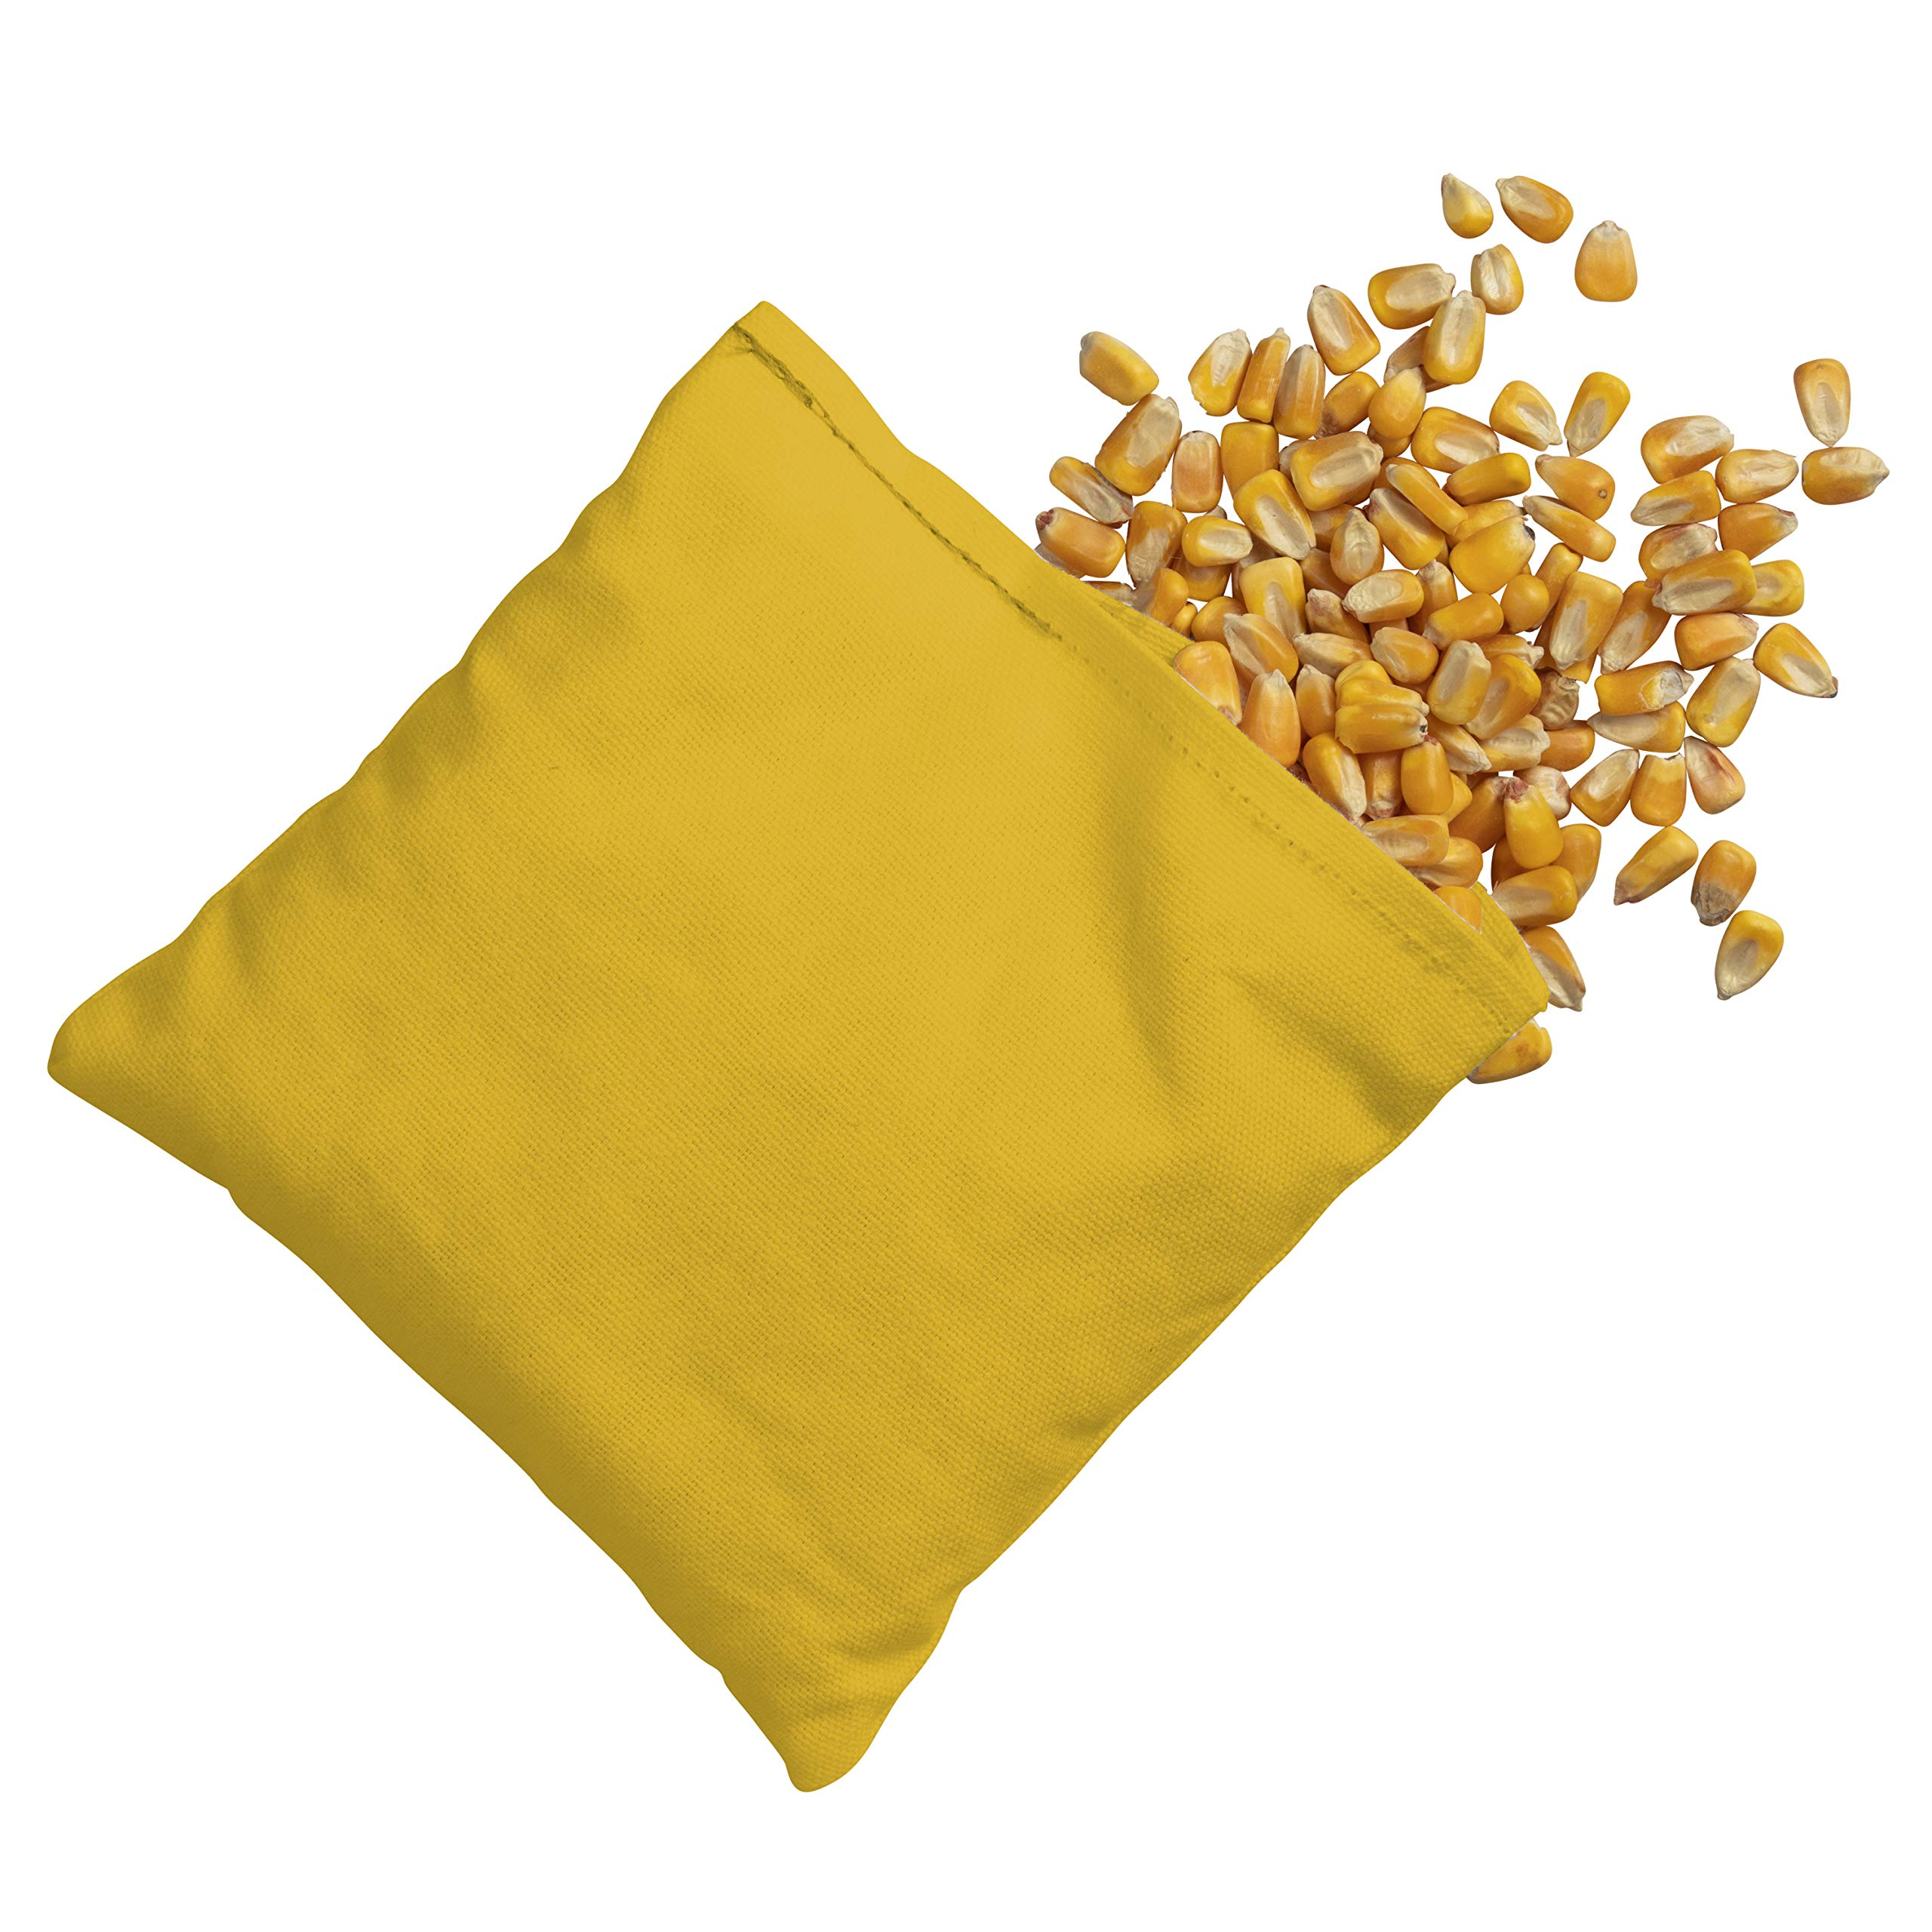 Victory Tailgate 8 Colored Corn Filled Regulation Cornhole Bags with Drawstring Pack (4 Black, 4 Yellow) by Victory Tailgate (Image #3)